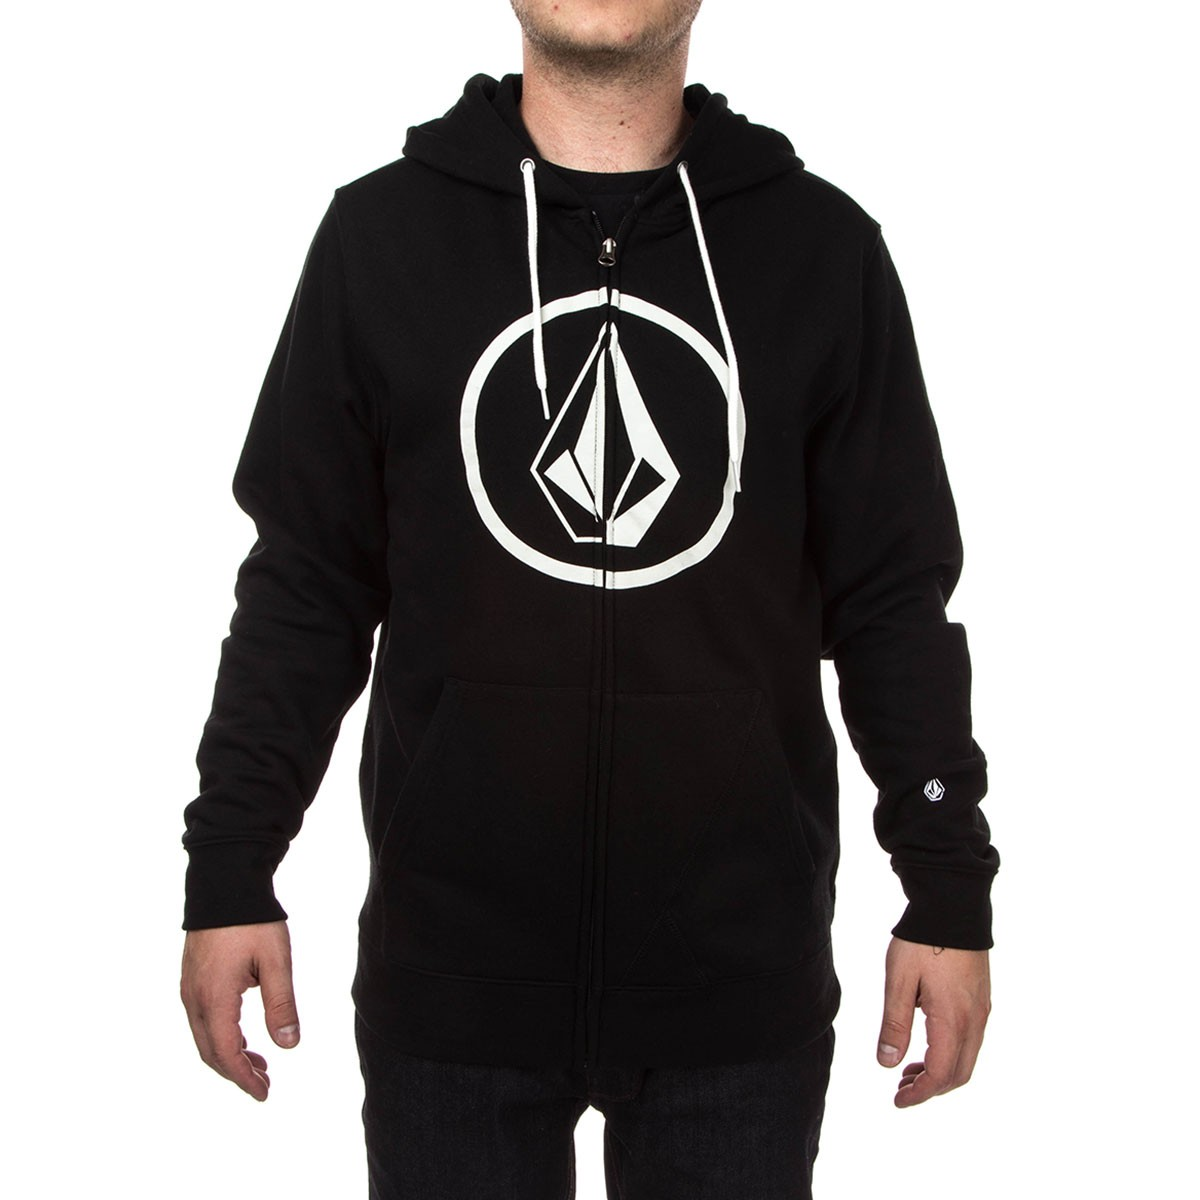 release date offer discounts shoes for cheap Volcom Stone Zip Hoodie - Black